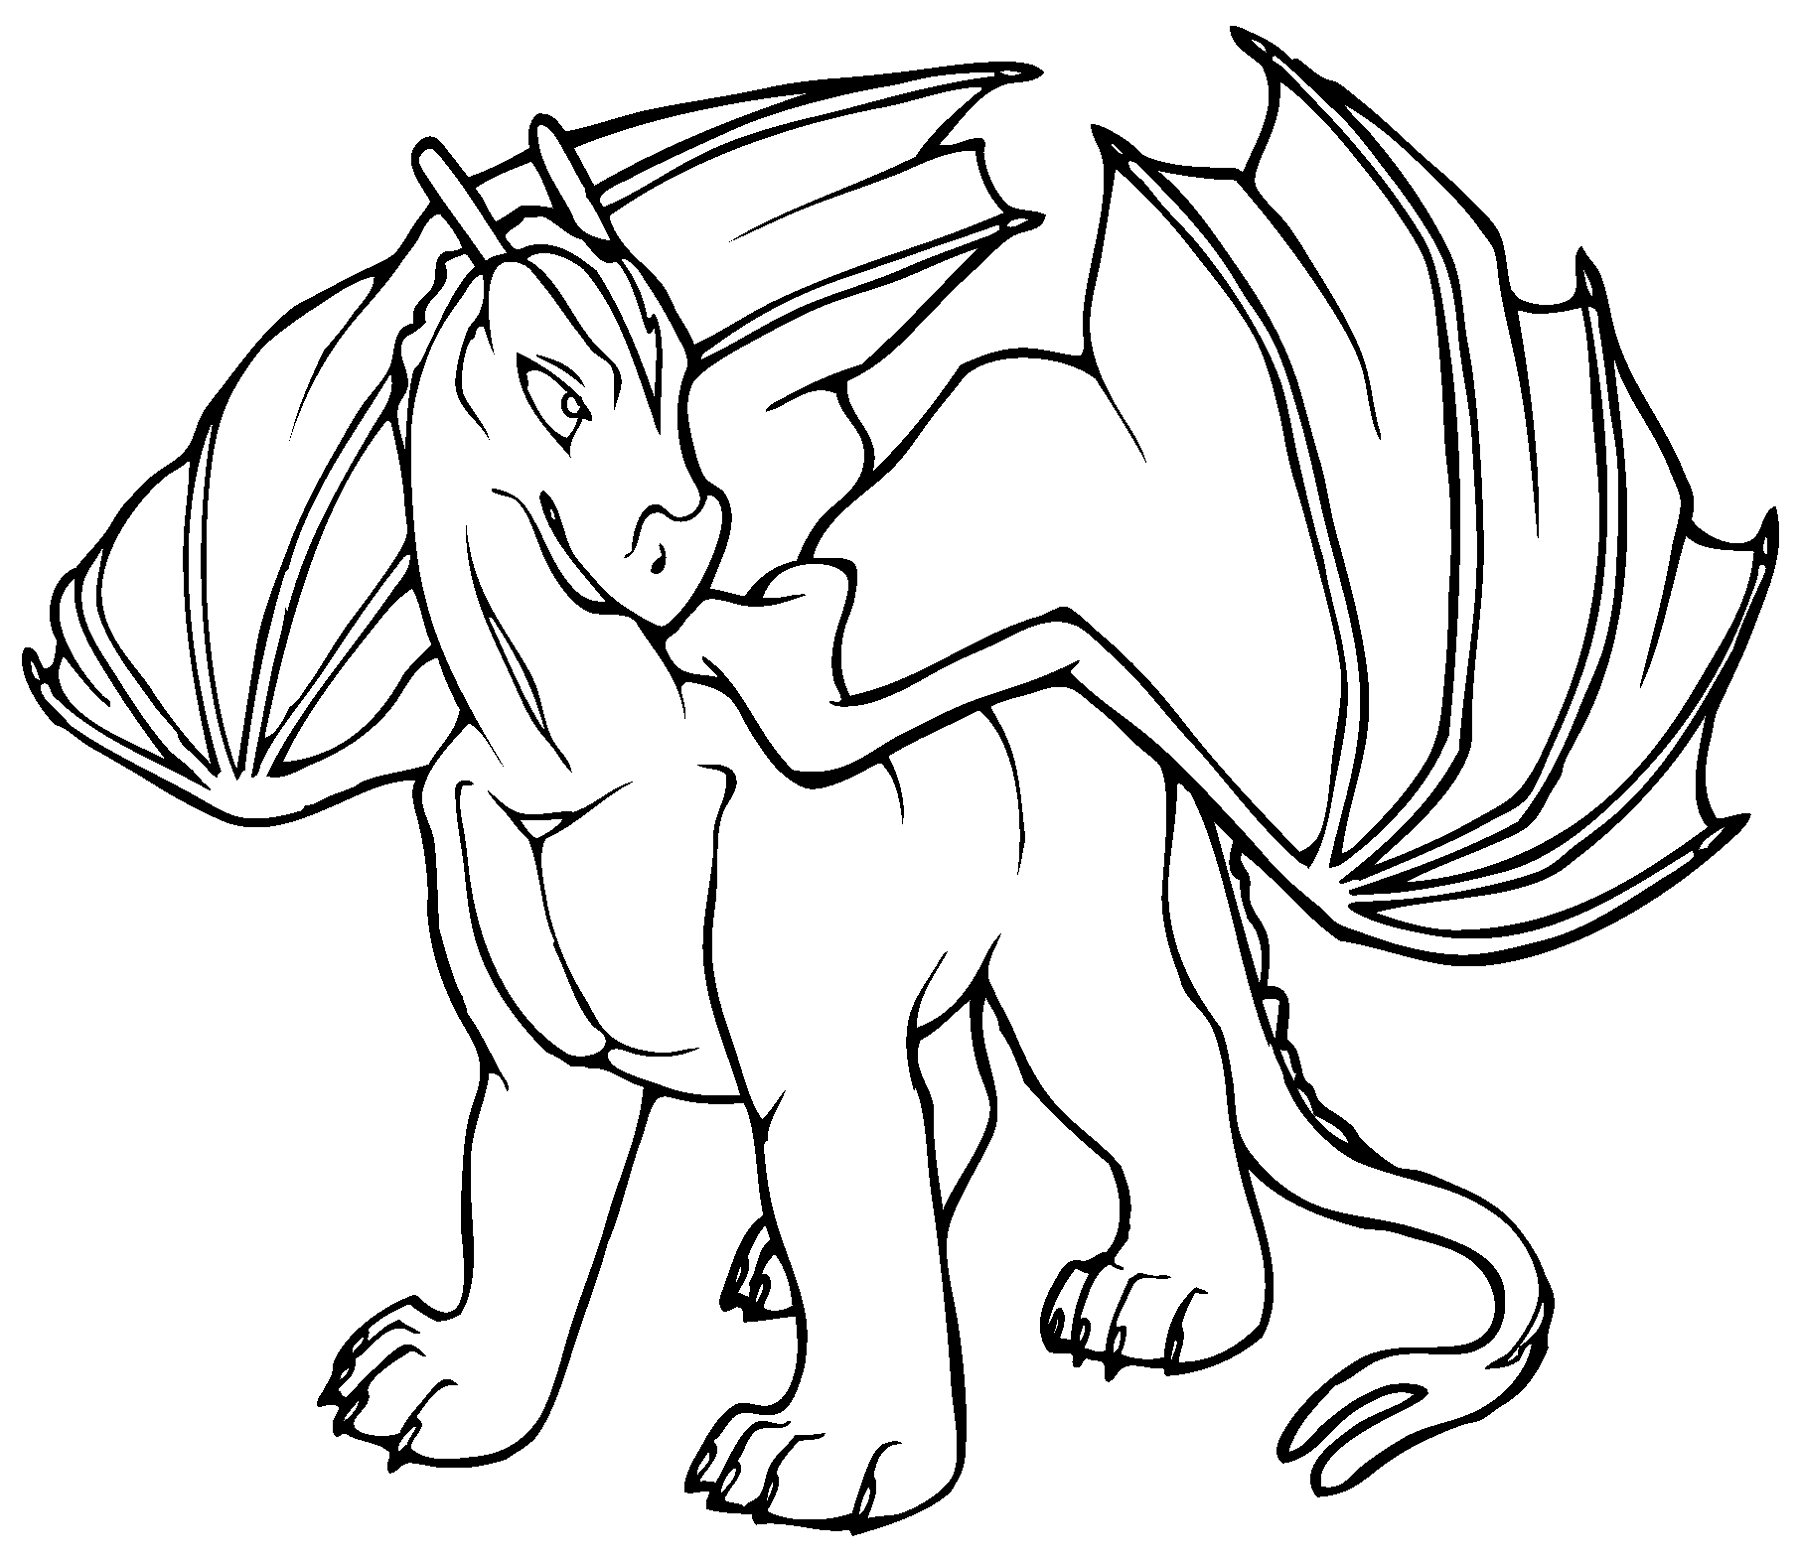 dragon coloring pages printable coloring pages dragon coloring pages free and printable dragon pages coloring printable